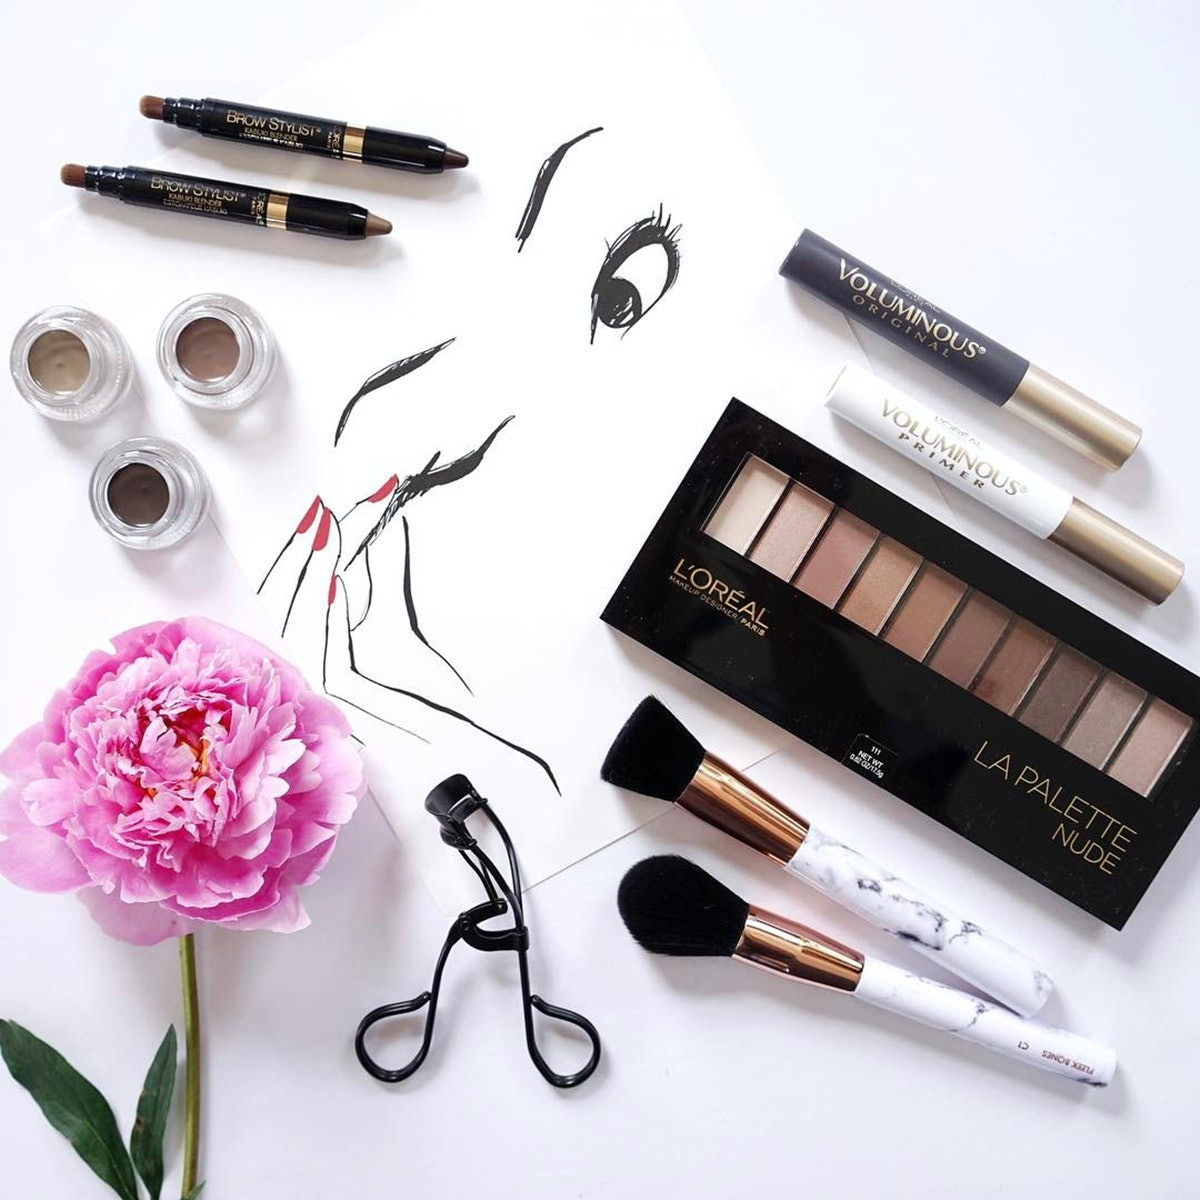 12 Makeup Staples You Can Score For $10 Or Less